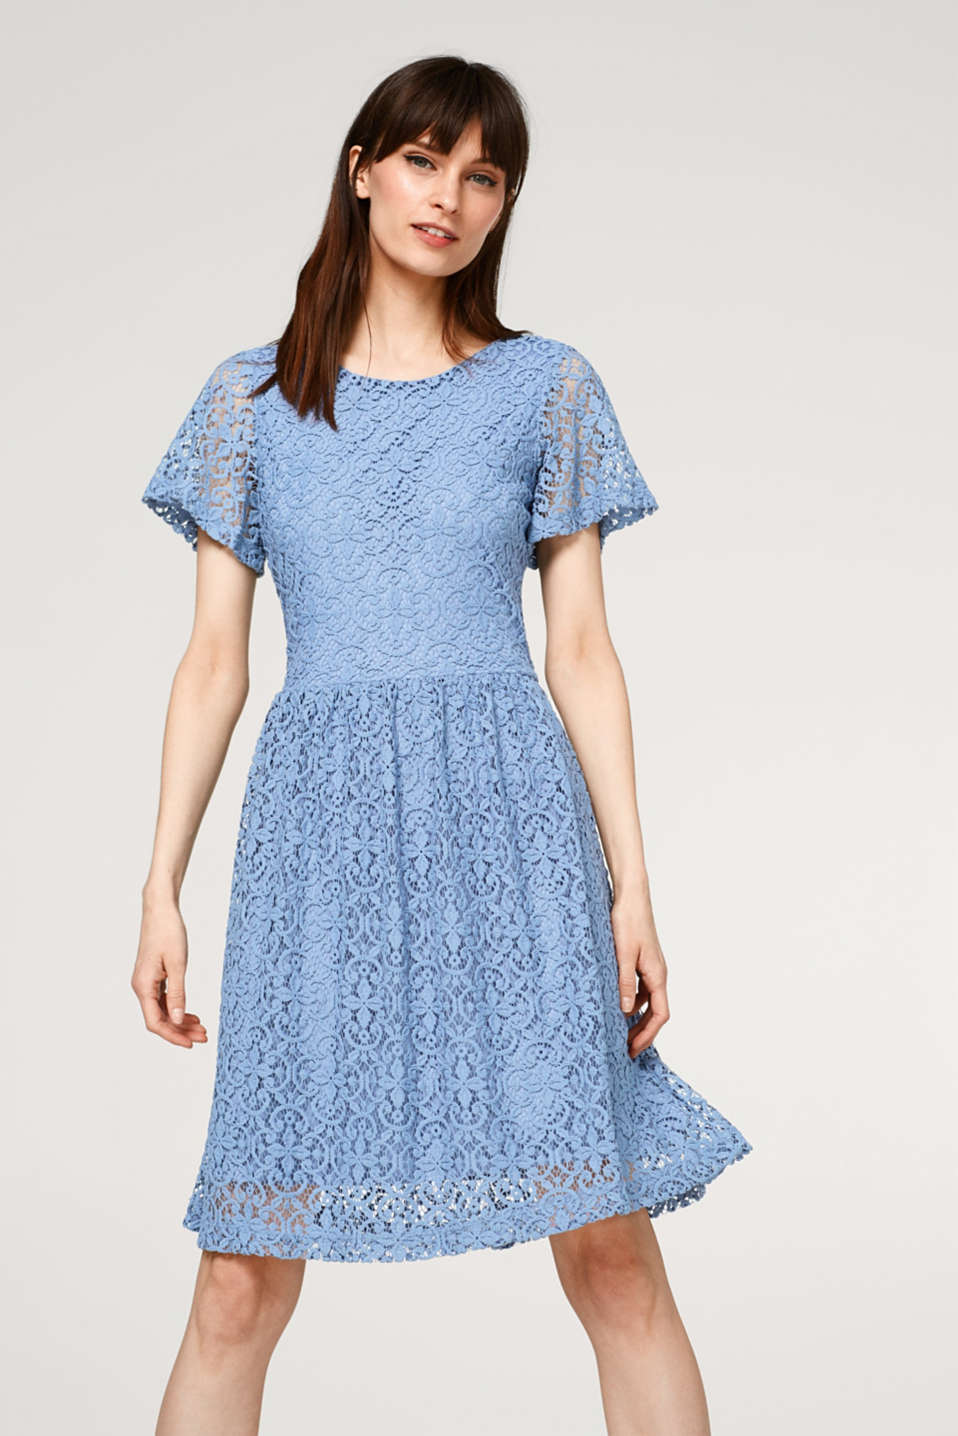 Esprit - Airy dress made of soft lace